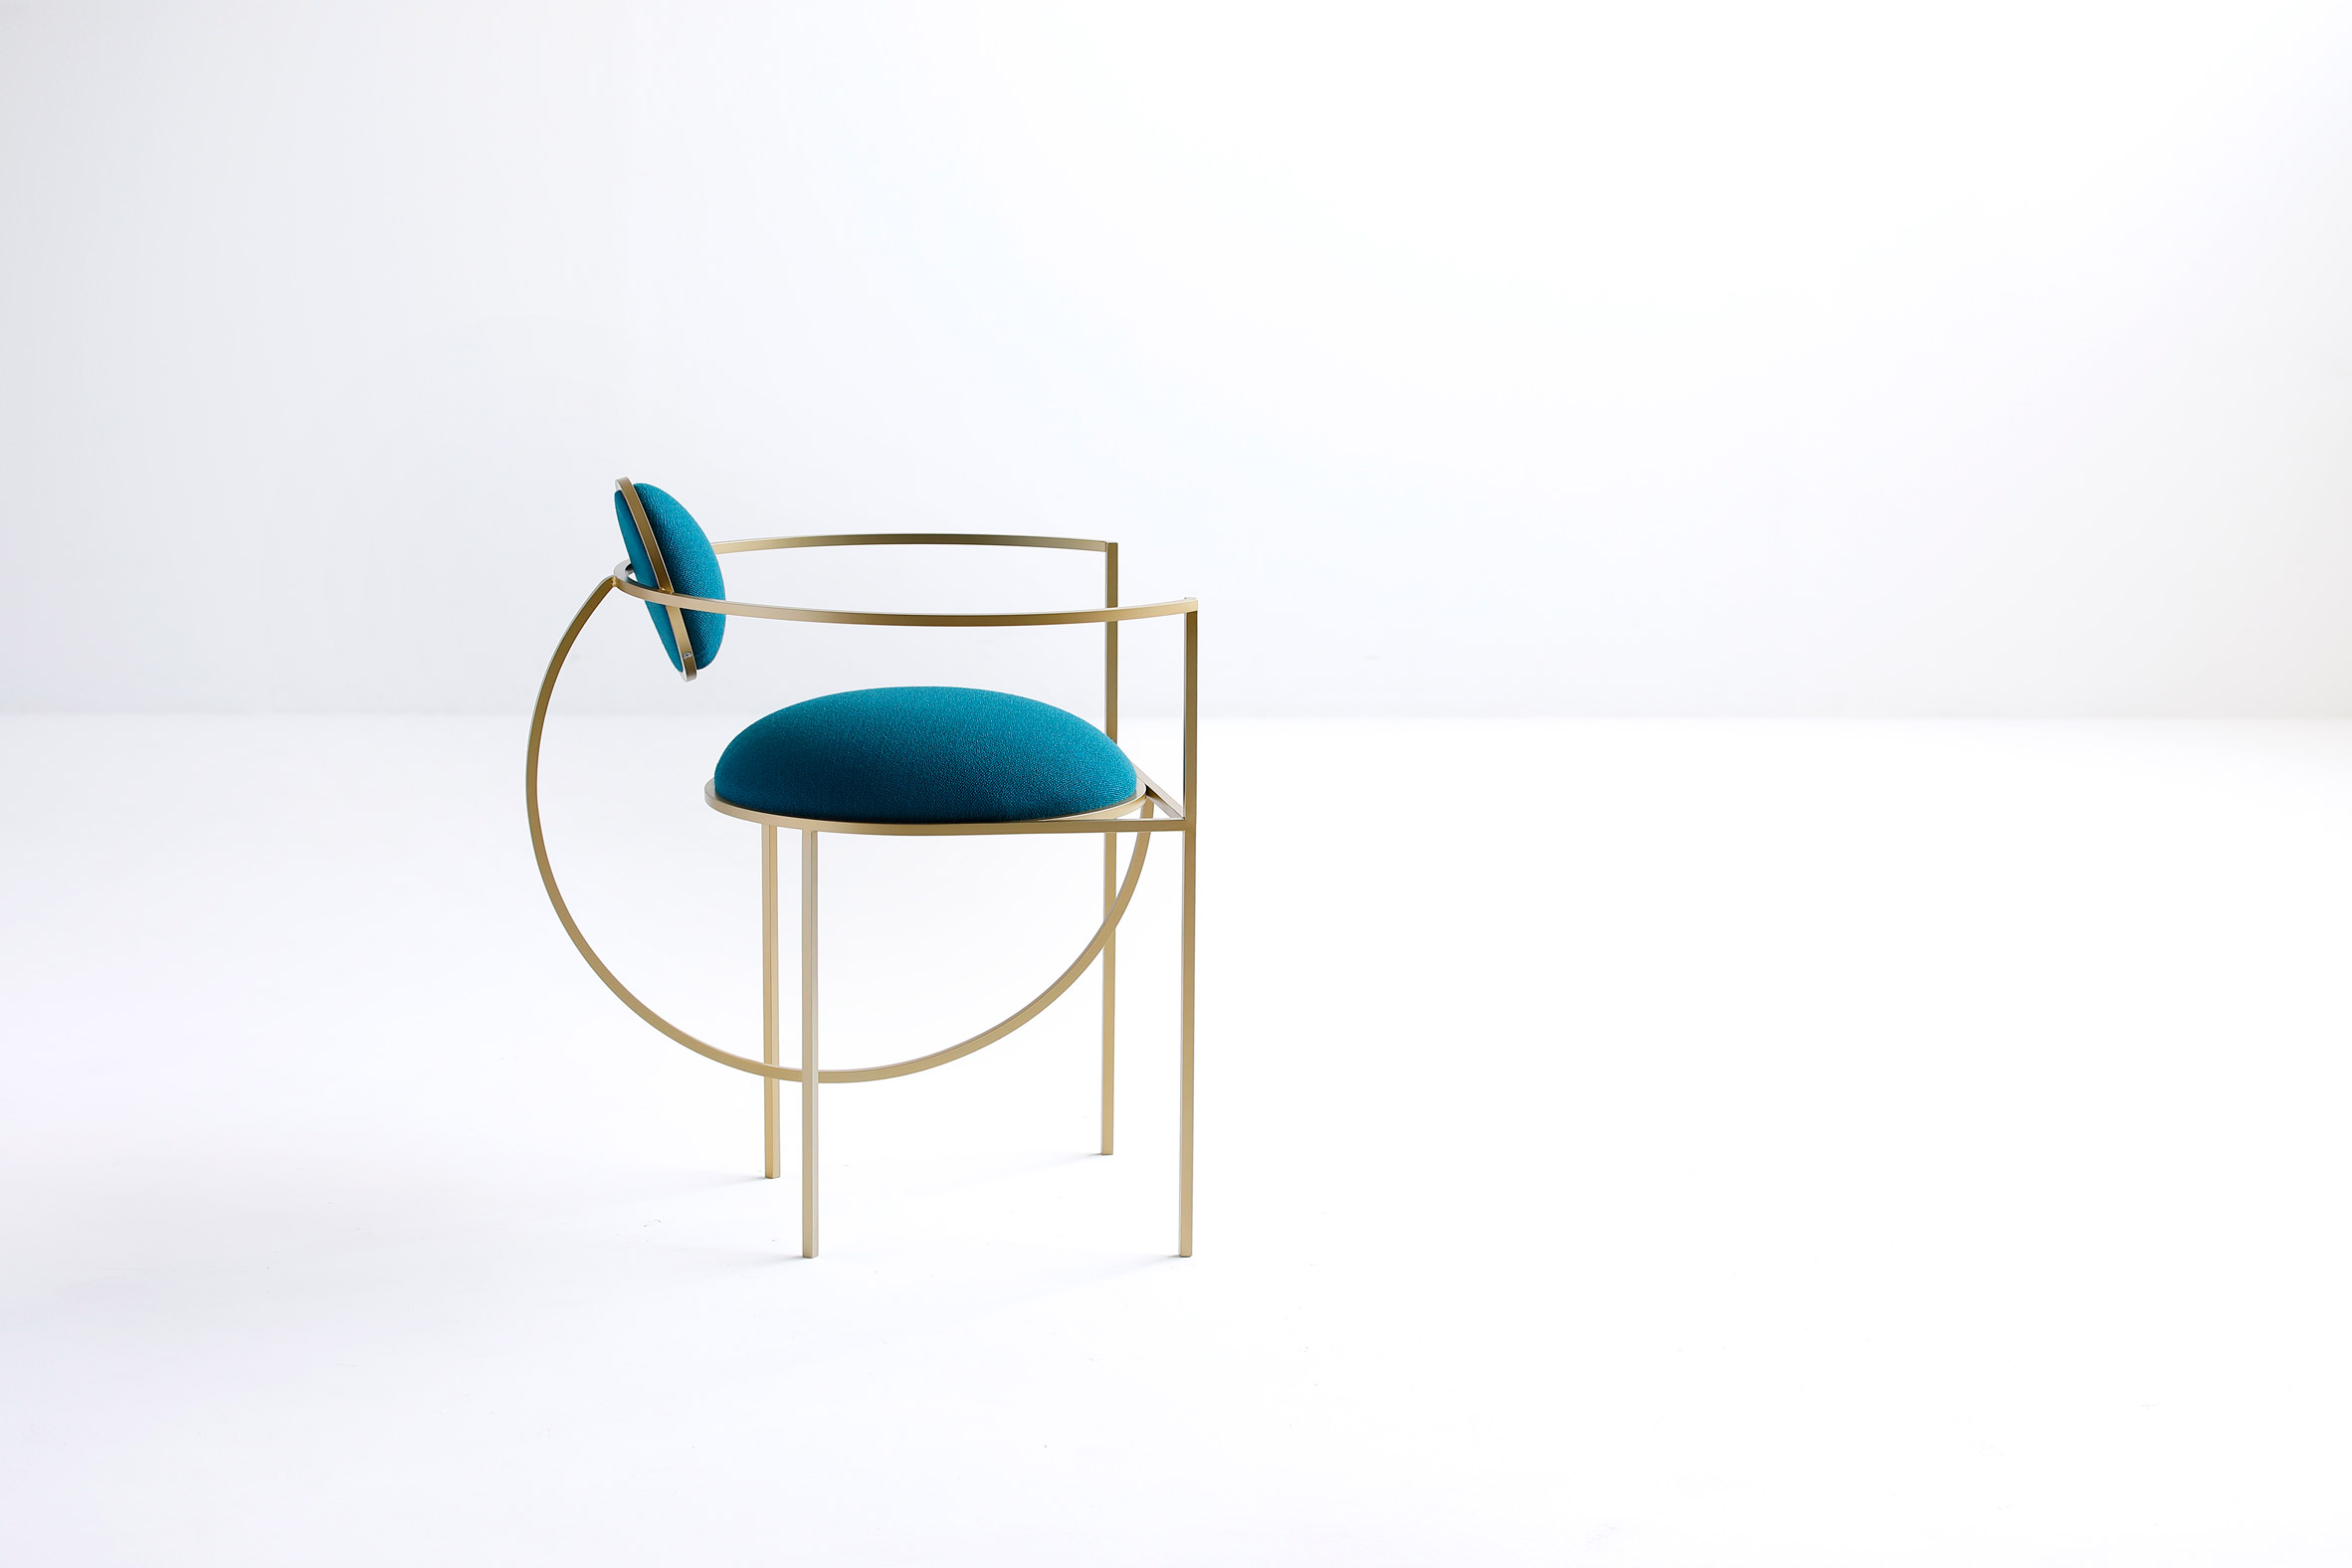 Lara Bohinc takes cues from celestial forms for first seating collection插图1